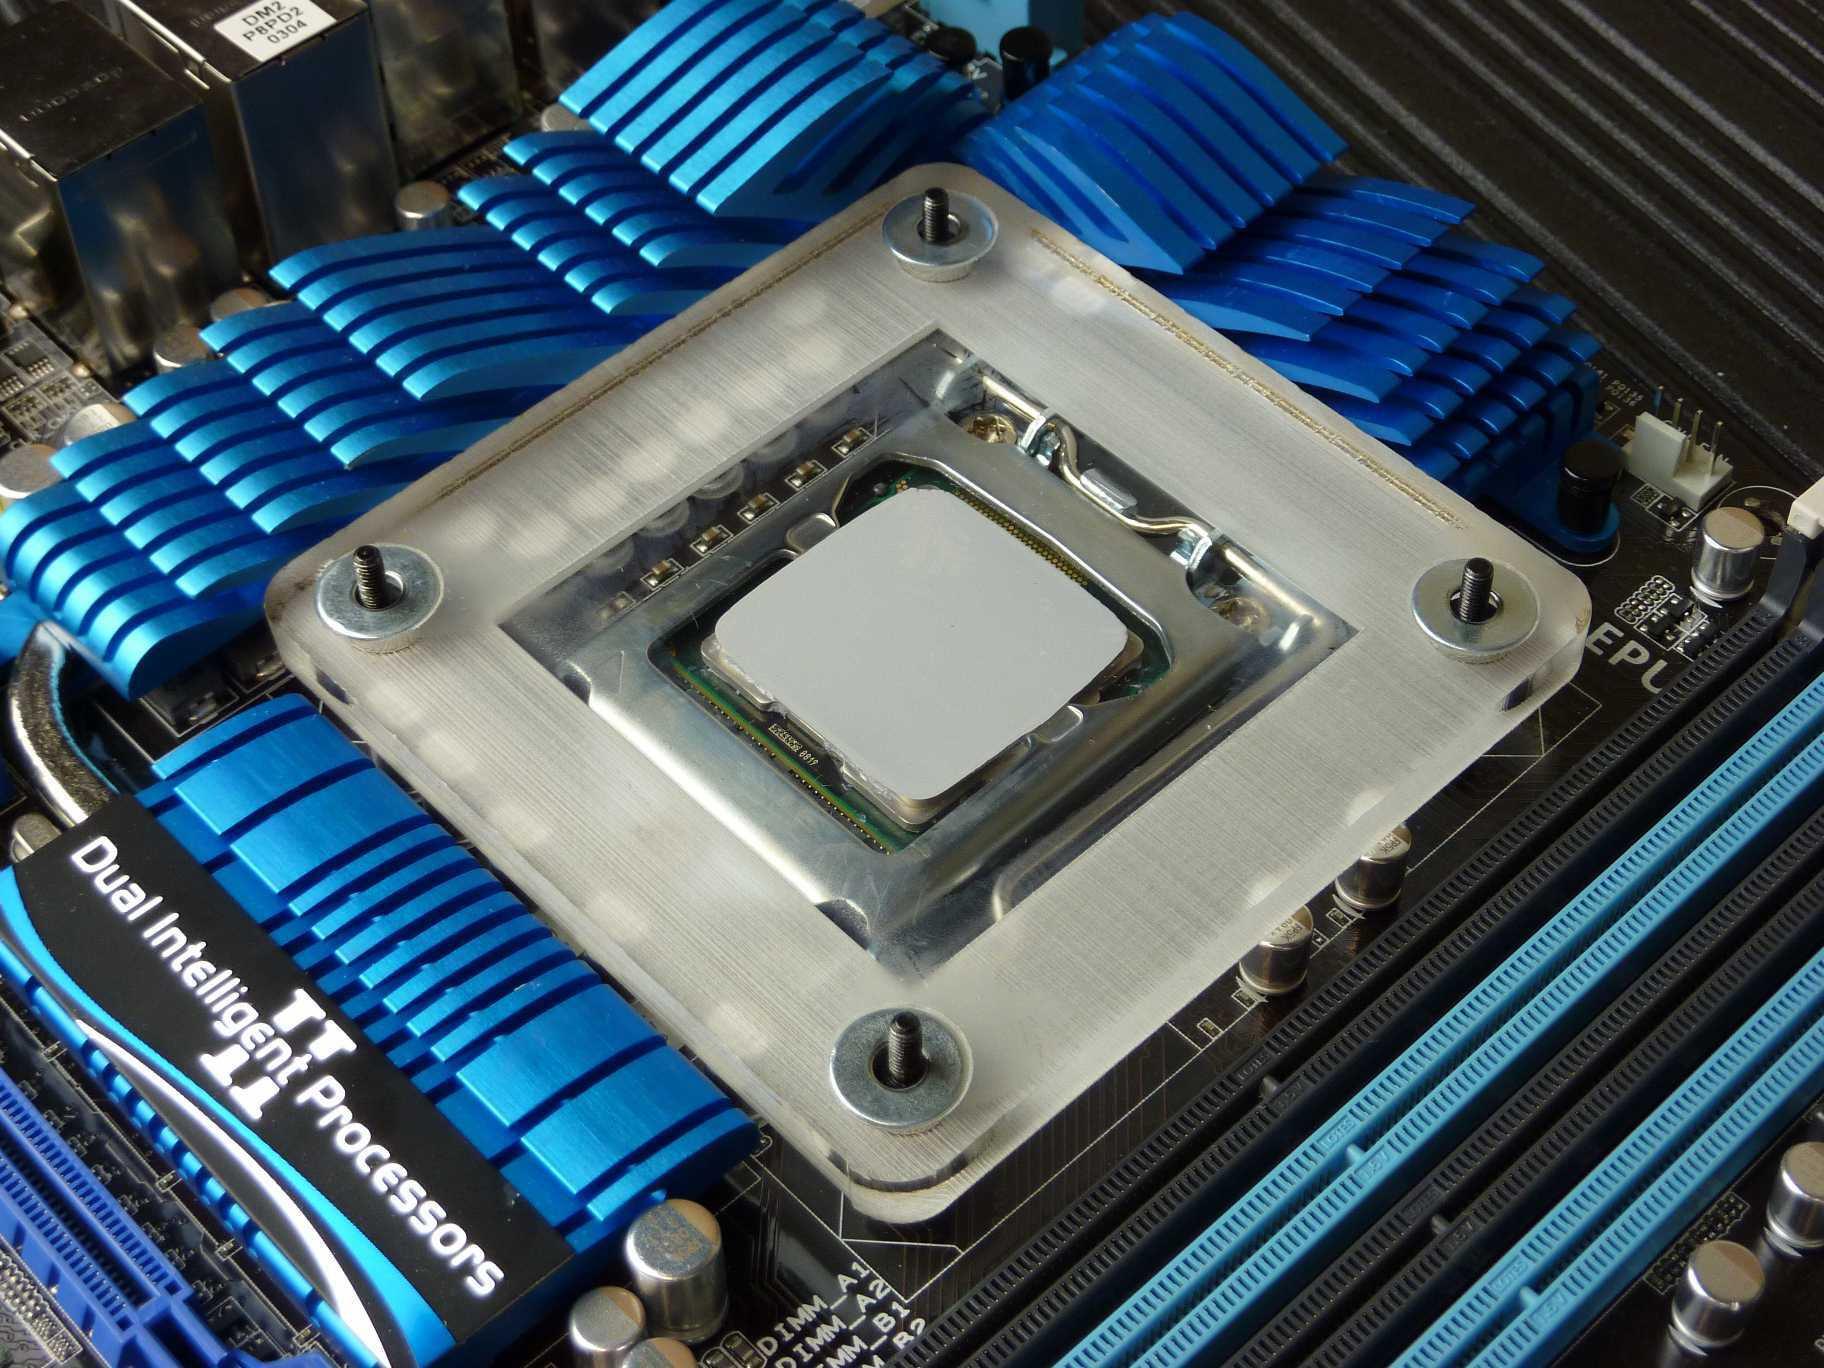 Thermal Paste Spreader In Place